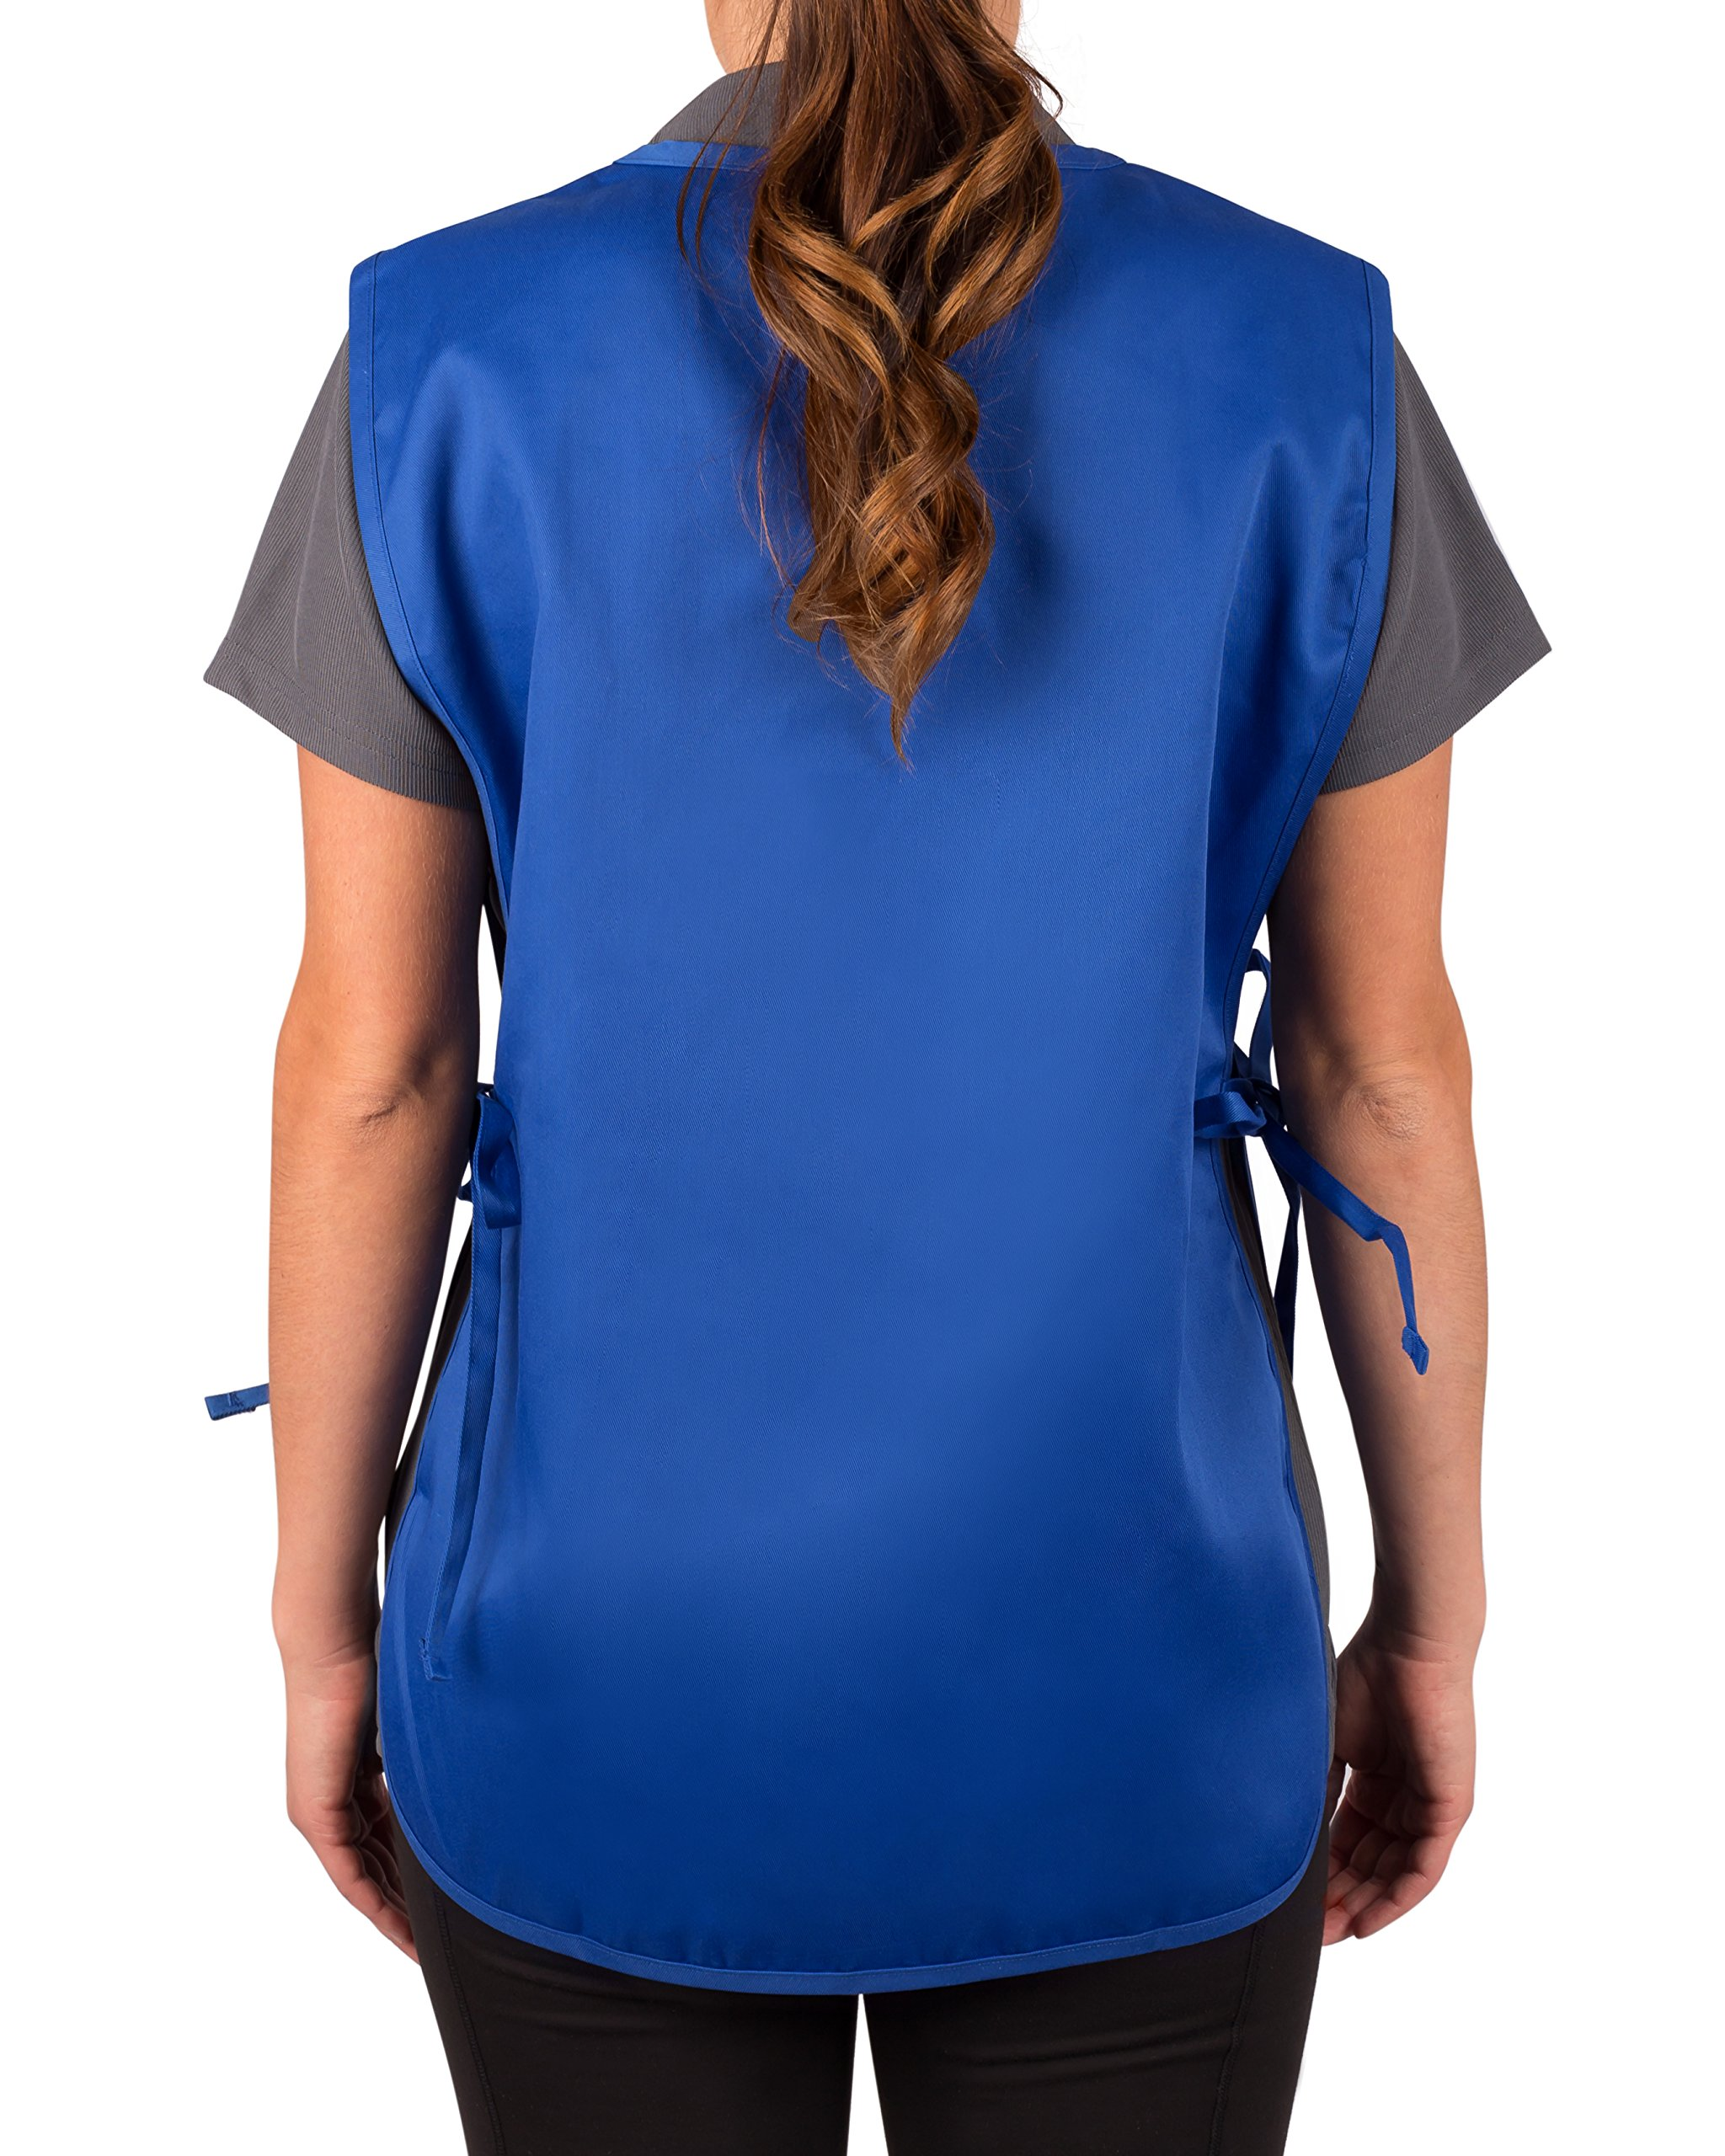 Royal Blue Cobbler Apron, Pack of 36 by KNG (Image #2)